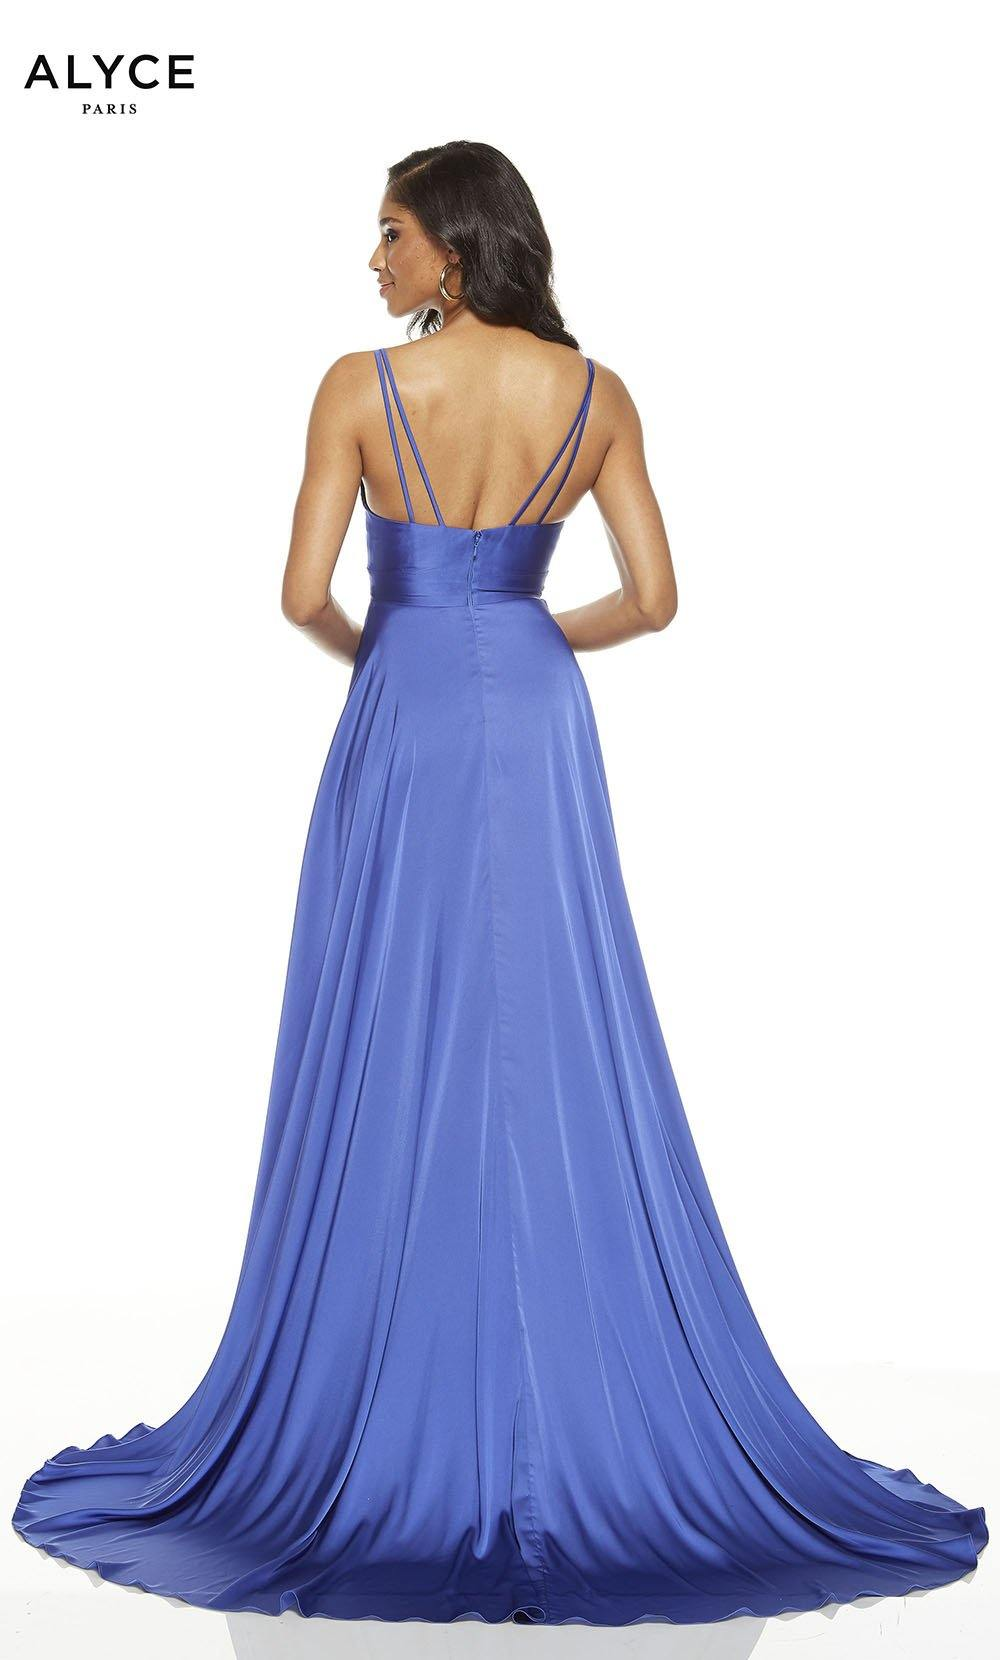 Cobalt flowy gown with an enclosed back